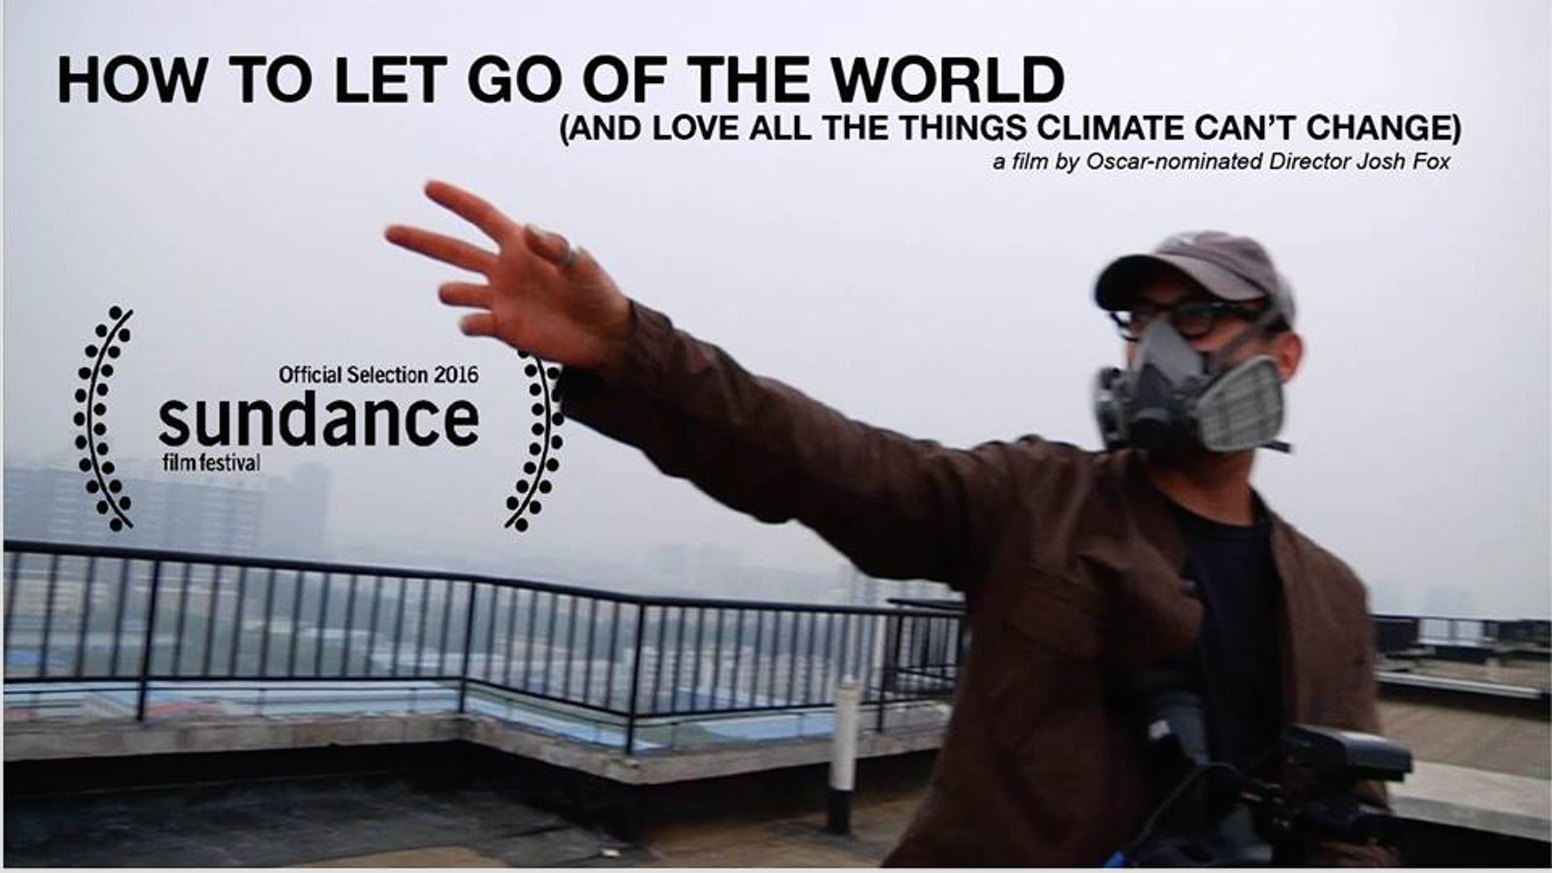 Oscar-nominated director, Josh Fox, brings his new documentary on climate change to 100 cities world wide on the LET GO AND LOVE Tour.